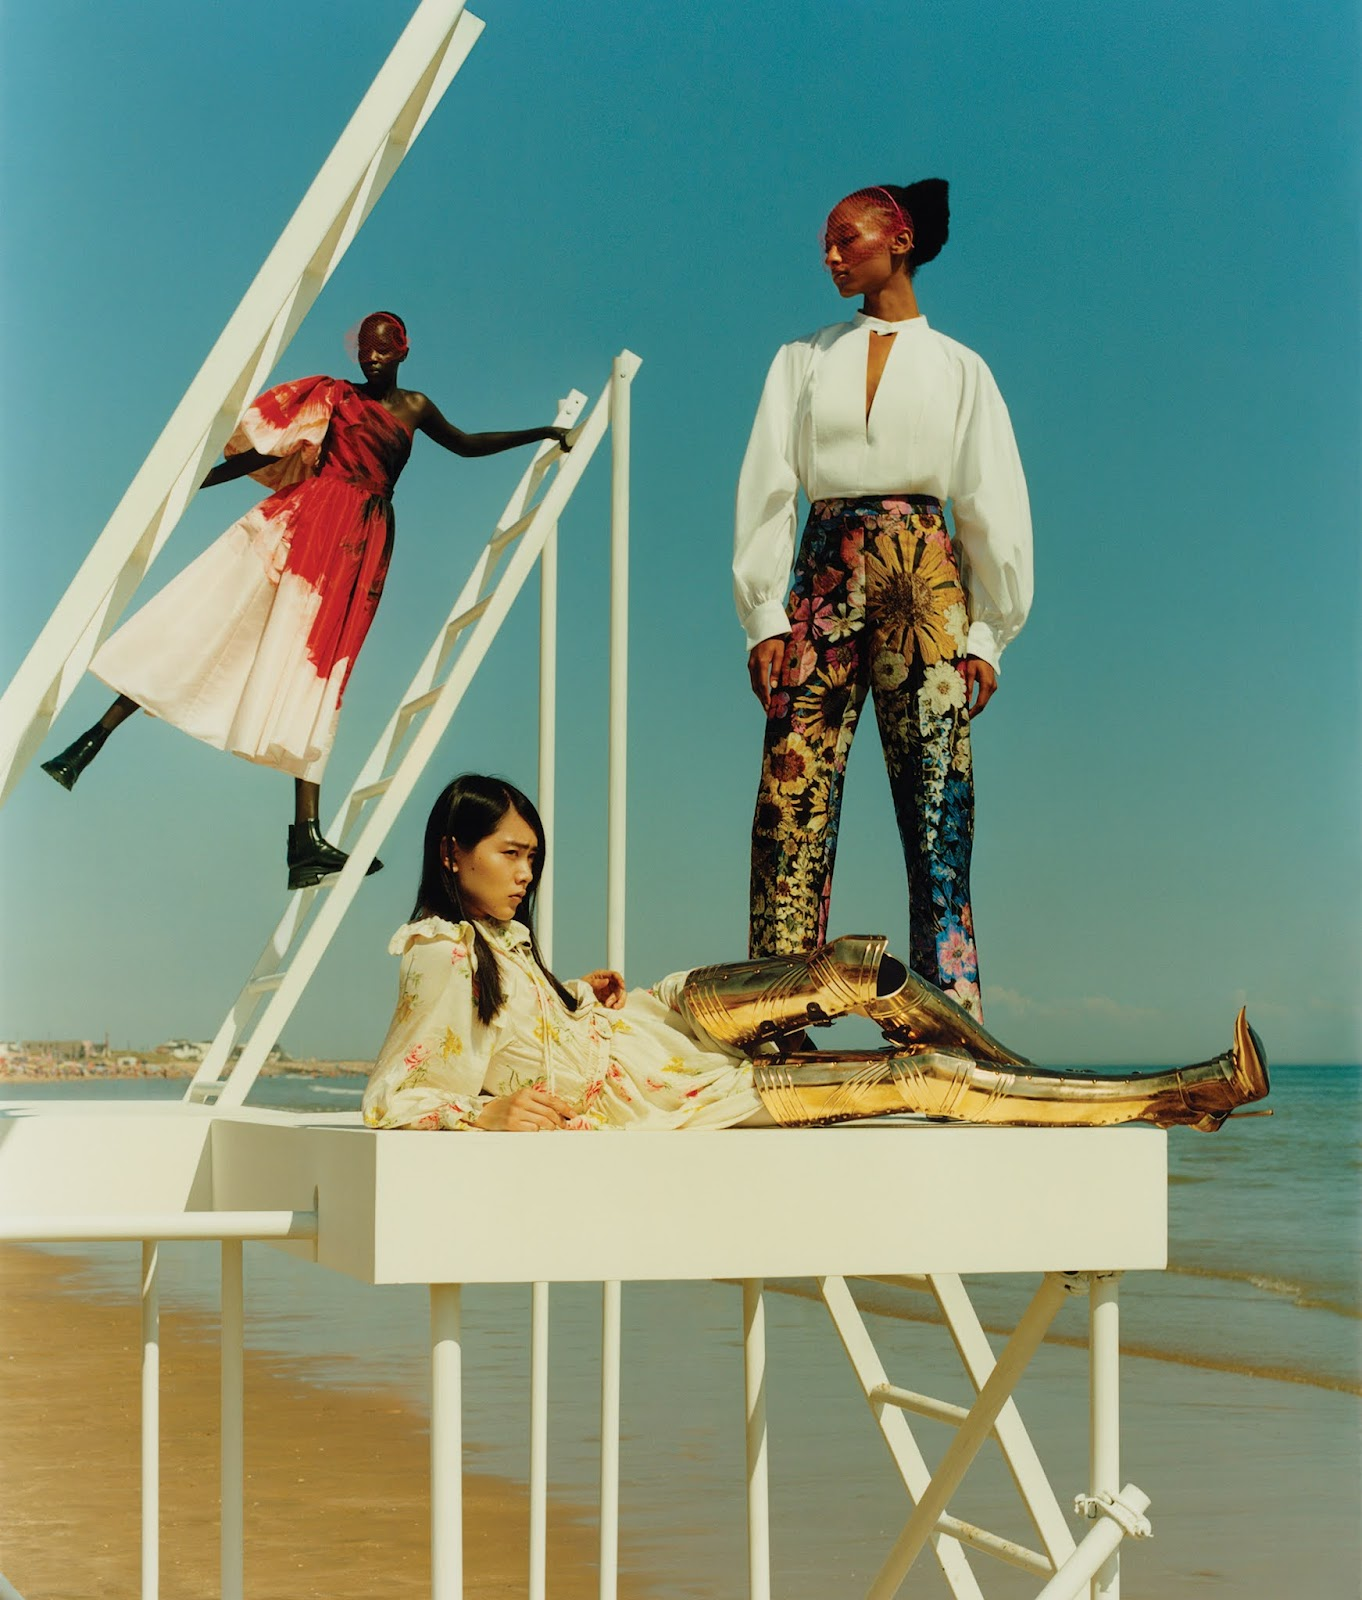 The Bold & The Beautiful' in WSJ. Magazine Fall 2021 by Markn